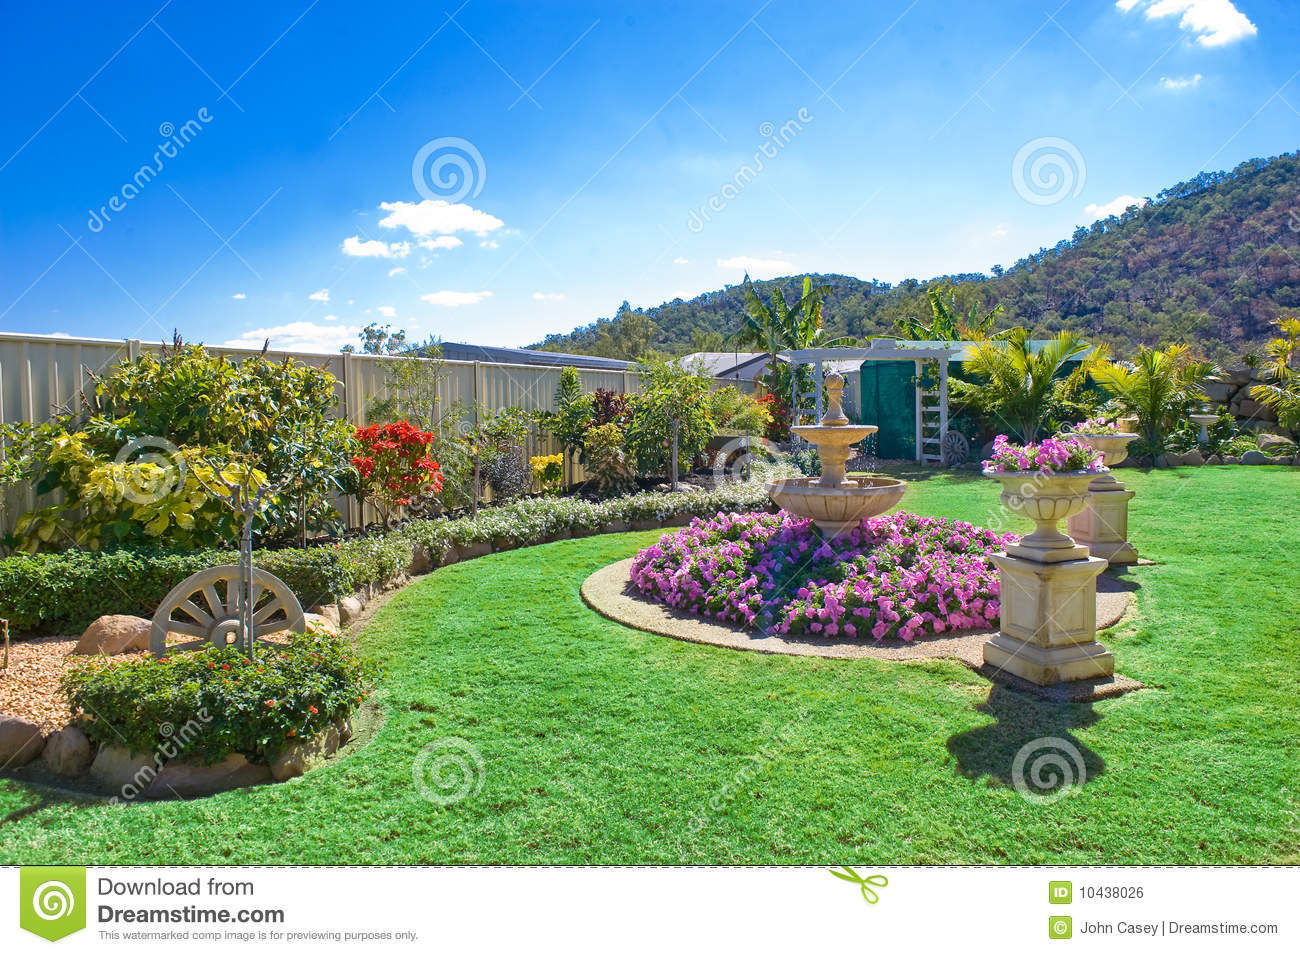 Landscaped gardens royalty free stock image image 10438026 for Garden landscaping online